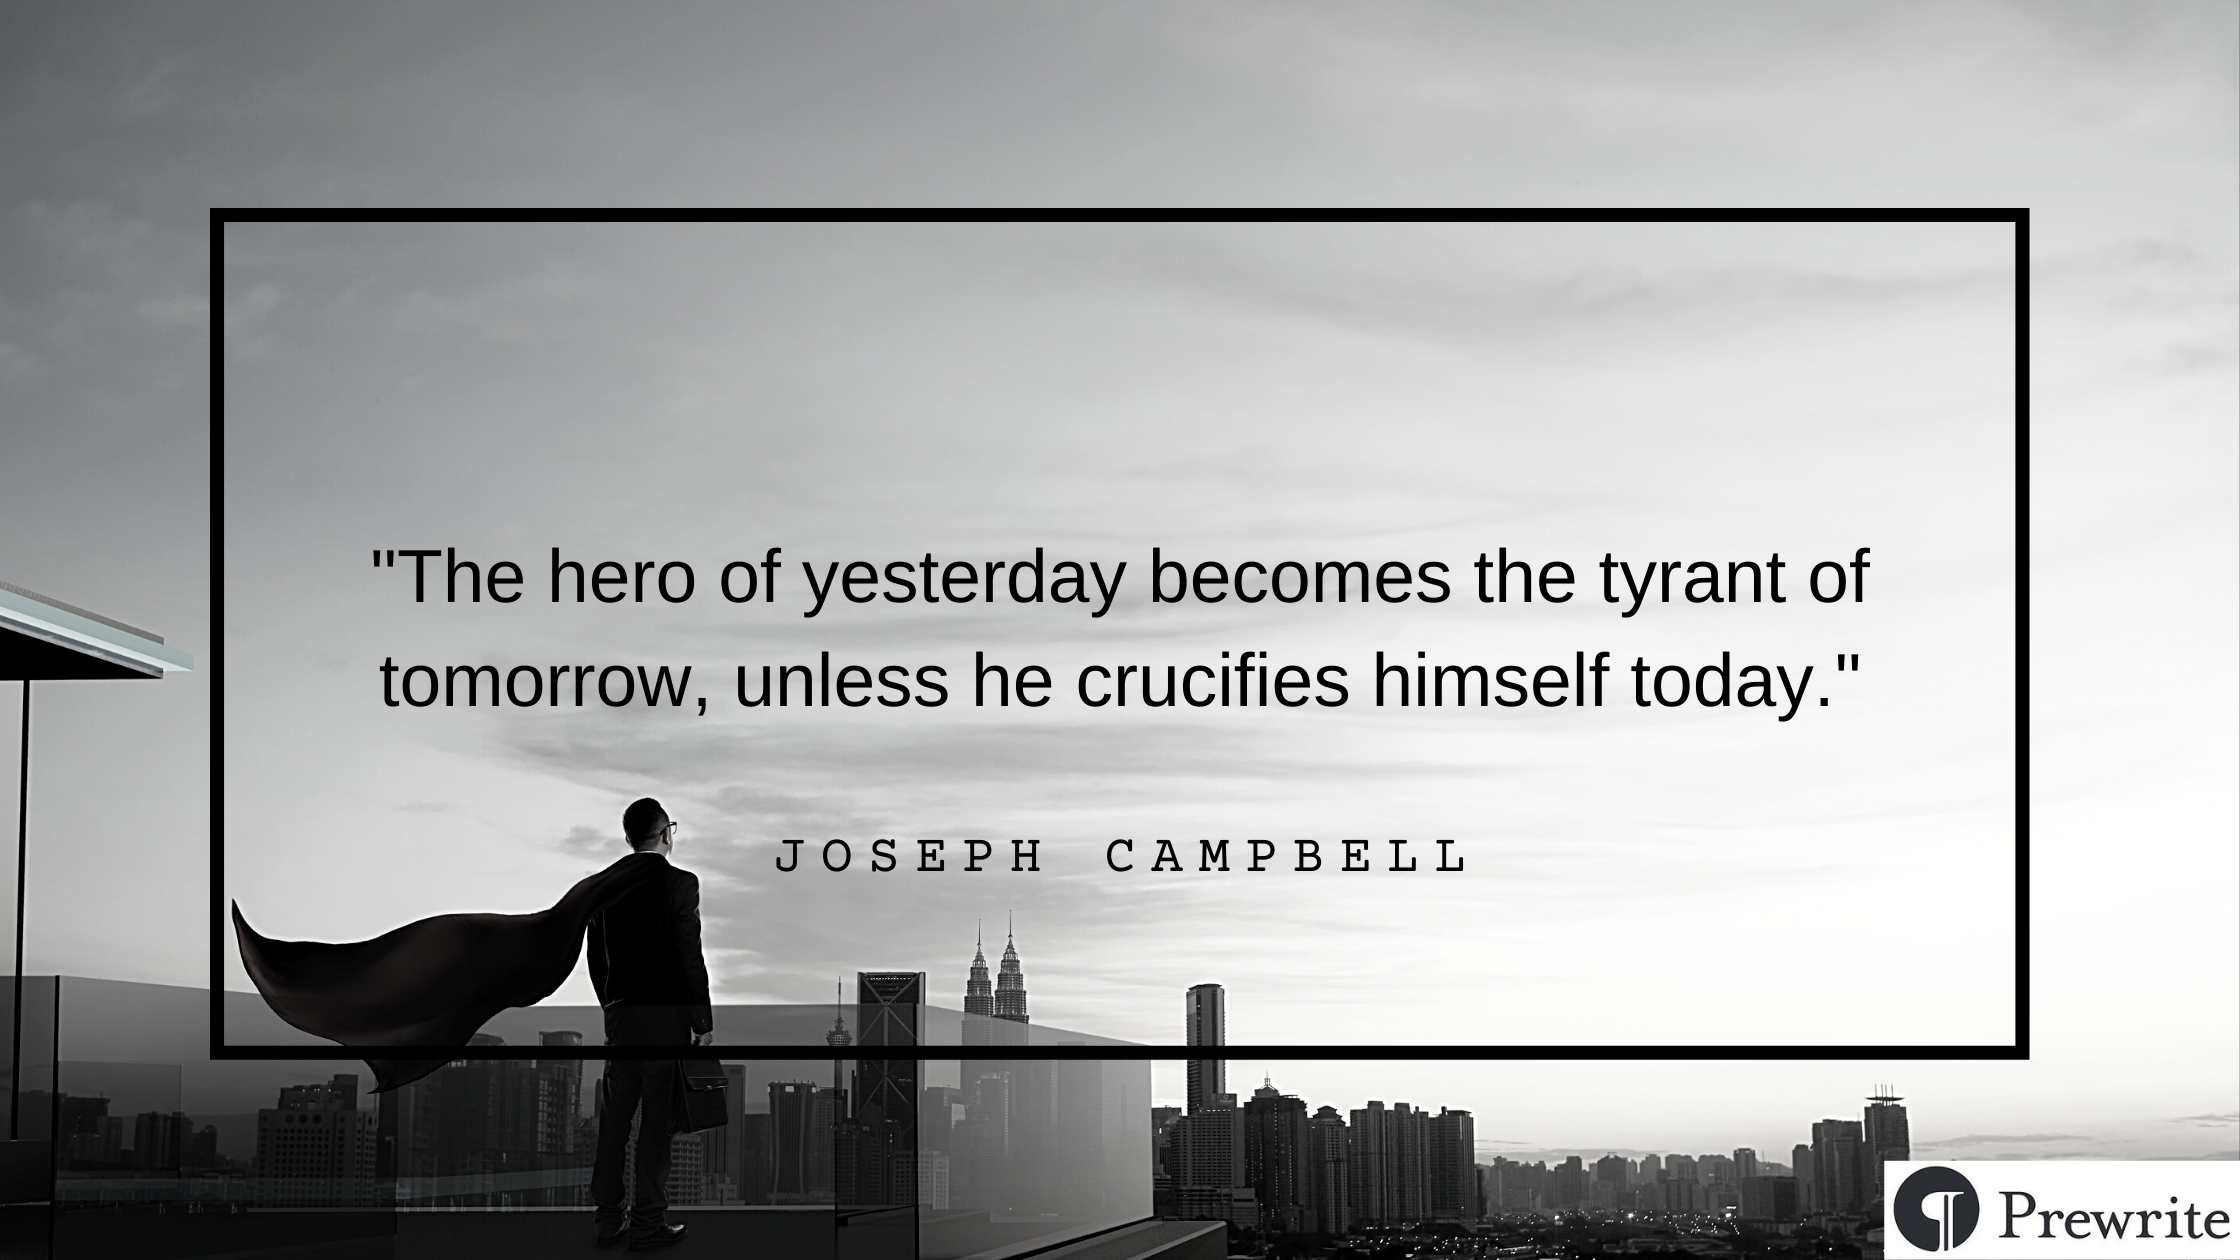 Joseph Campbell quote: The hero of yesterday becomes the tyrant of tomorrow, unless he crucifies himself today.